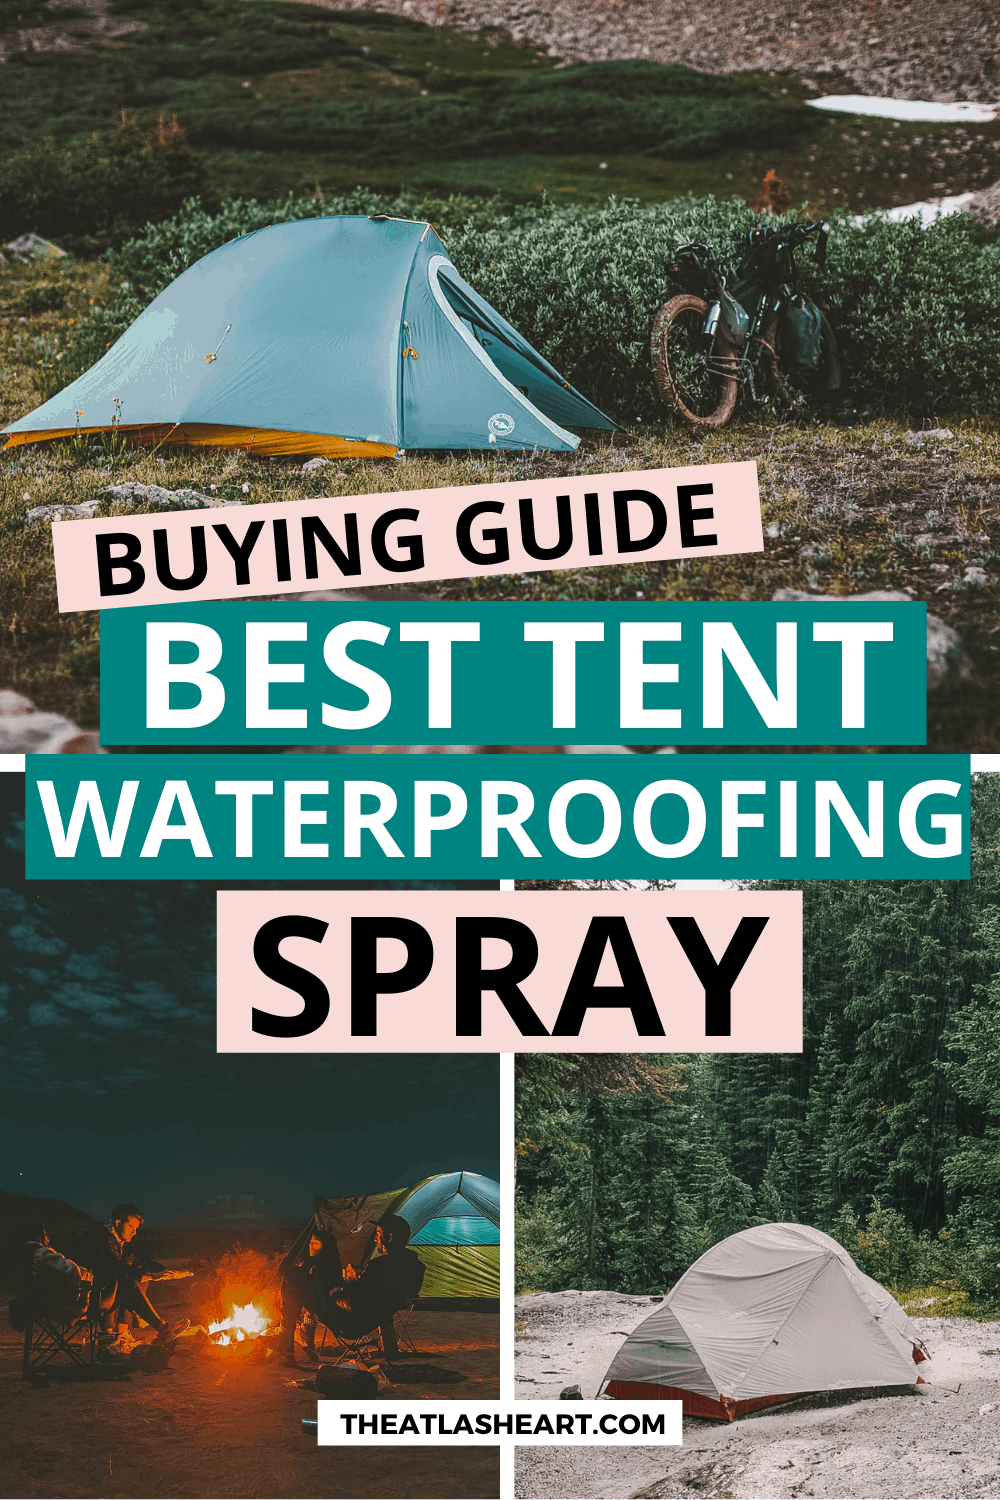 Best Tent Waterproofing Spray (For 2021) - Stay Dry at Camp